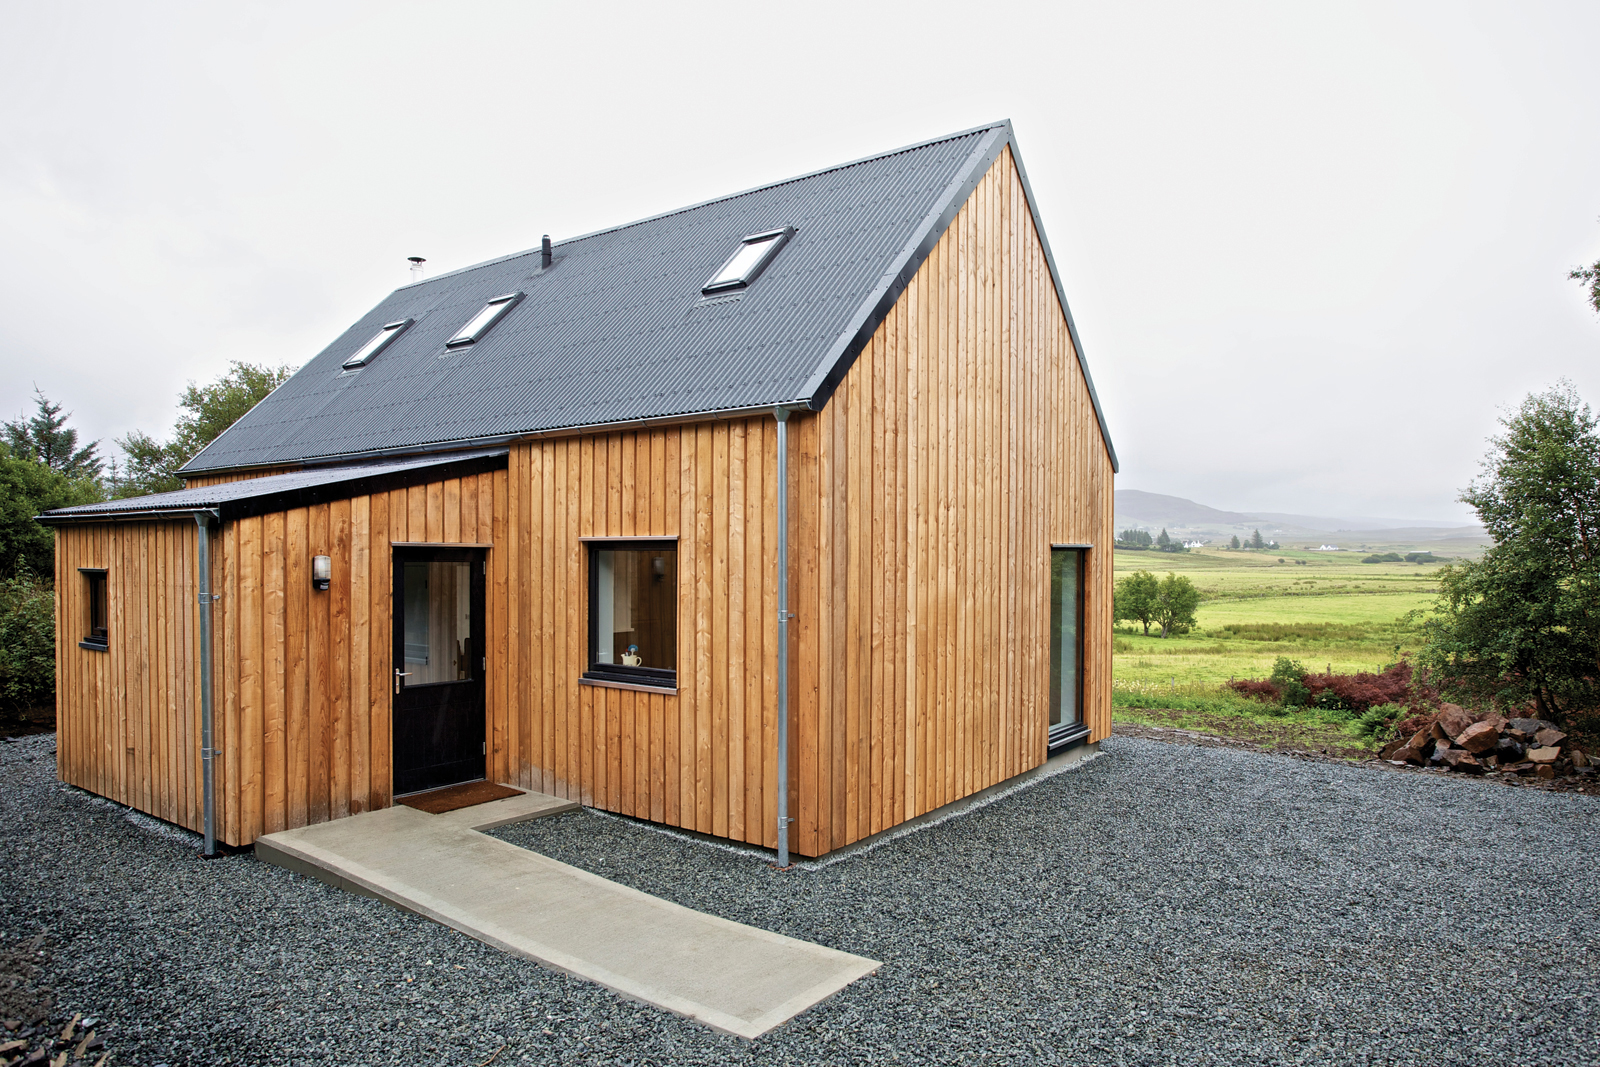 R.House in Isle of Skye, Scotland designed by Rural Design